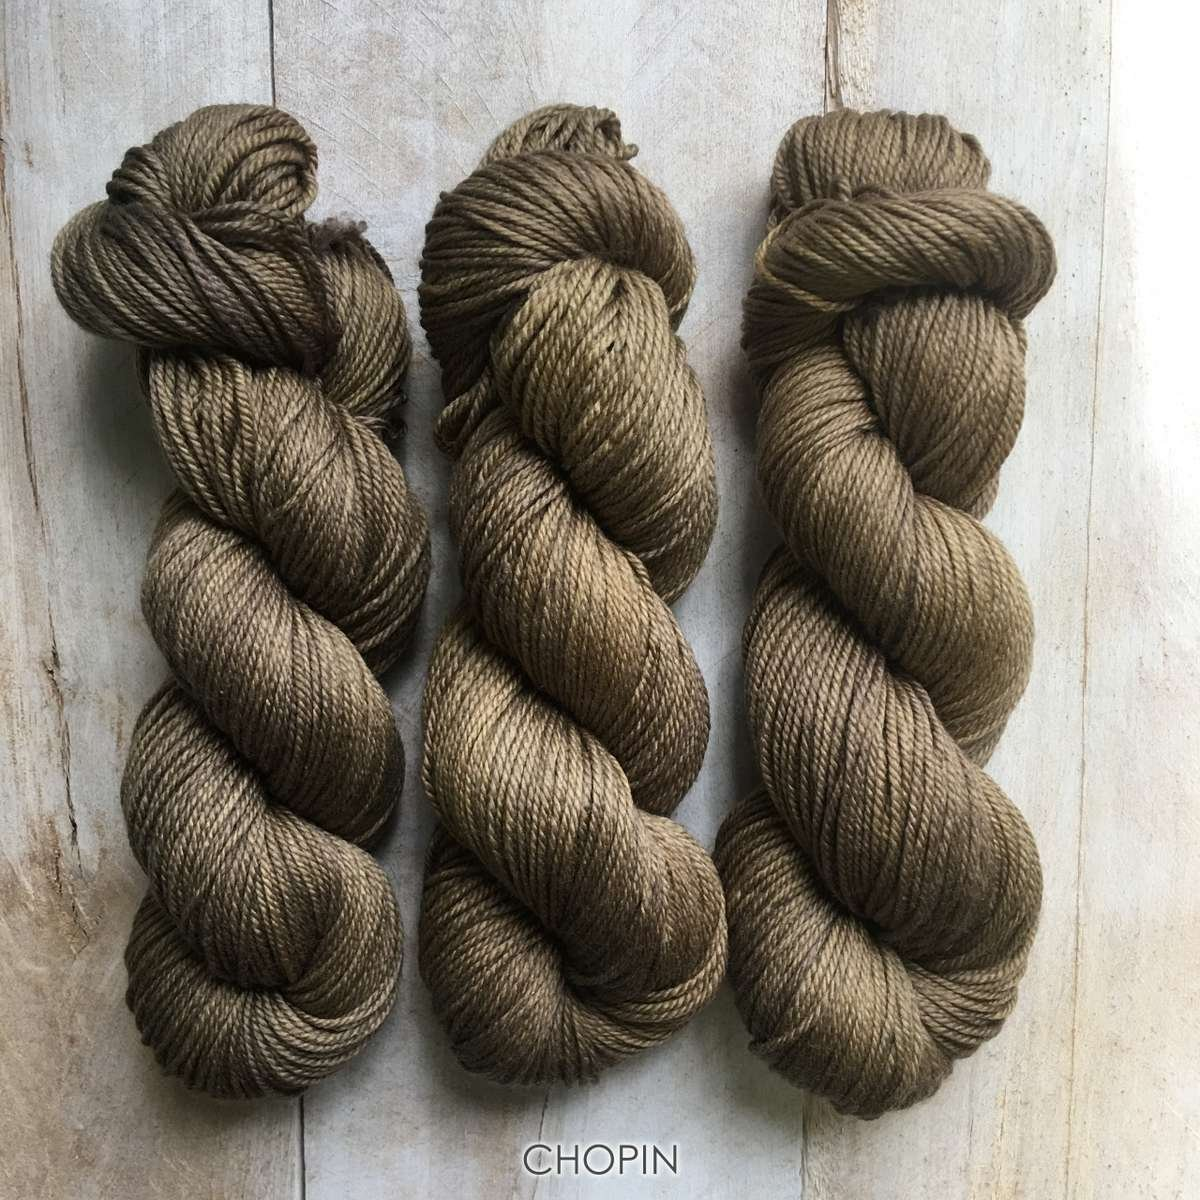 Hand-dyed yarn Louise Robert Chopin